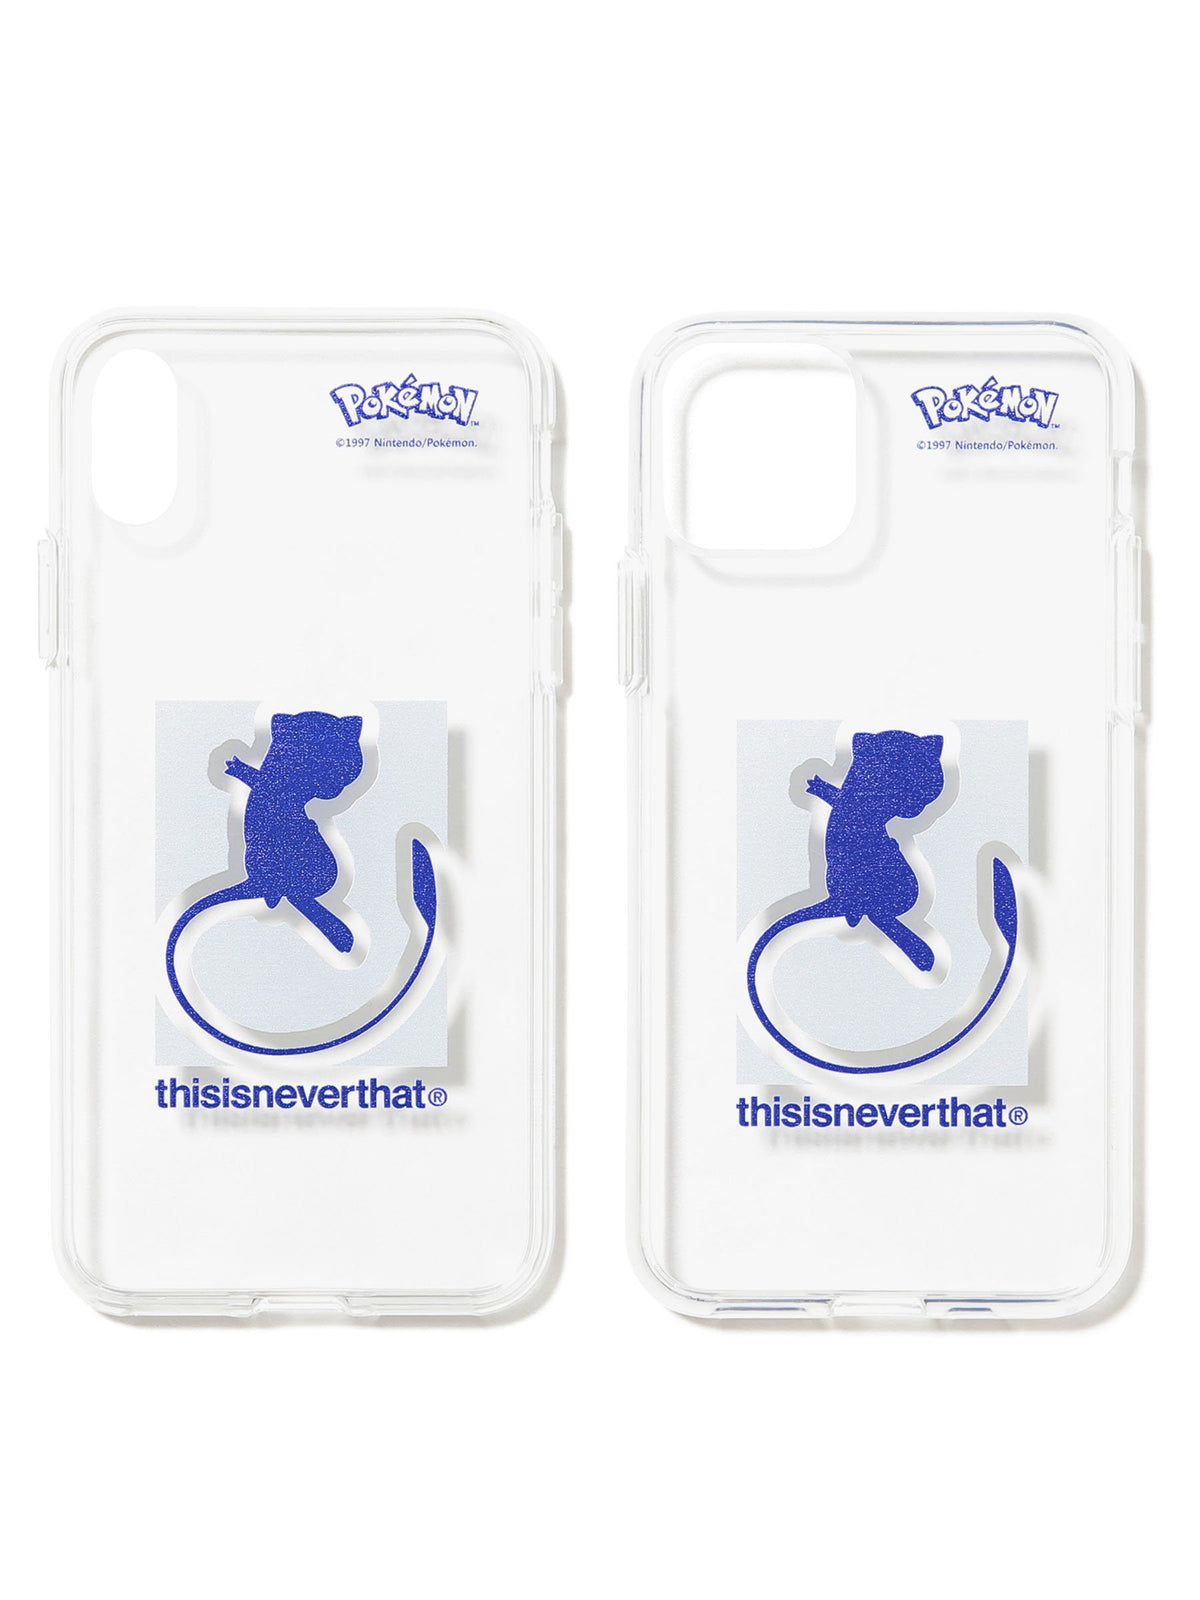 Pokemon Silhouette iPhone Case - thisisneverthat